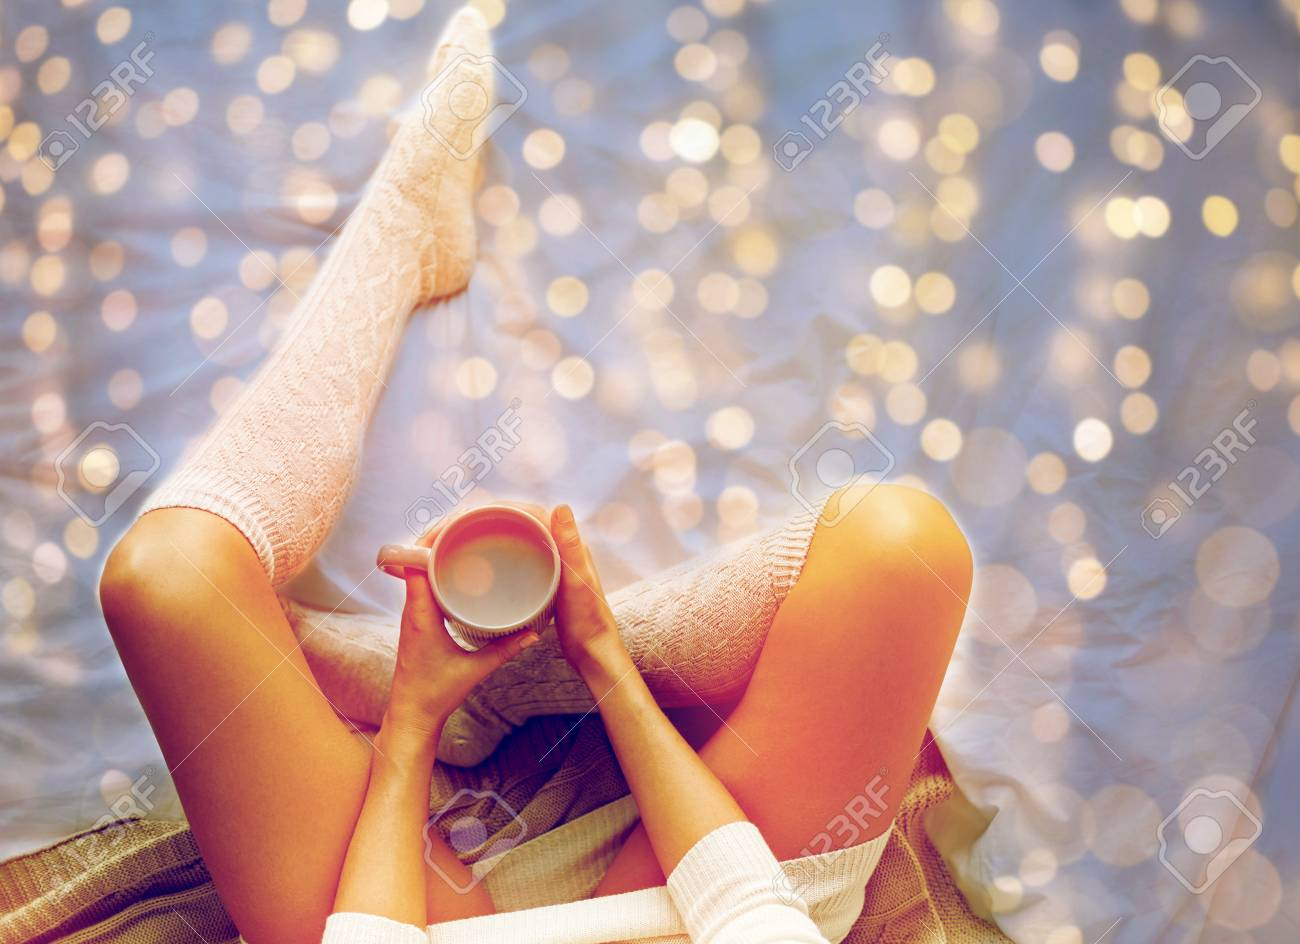 close up of woman with cocoa cup in bed at home - 89831487